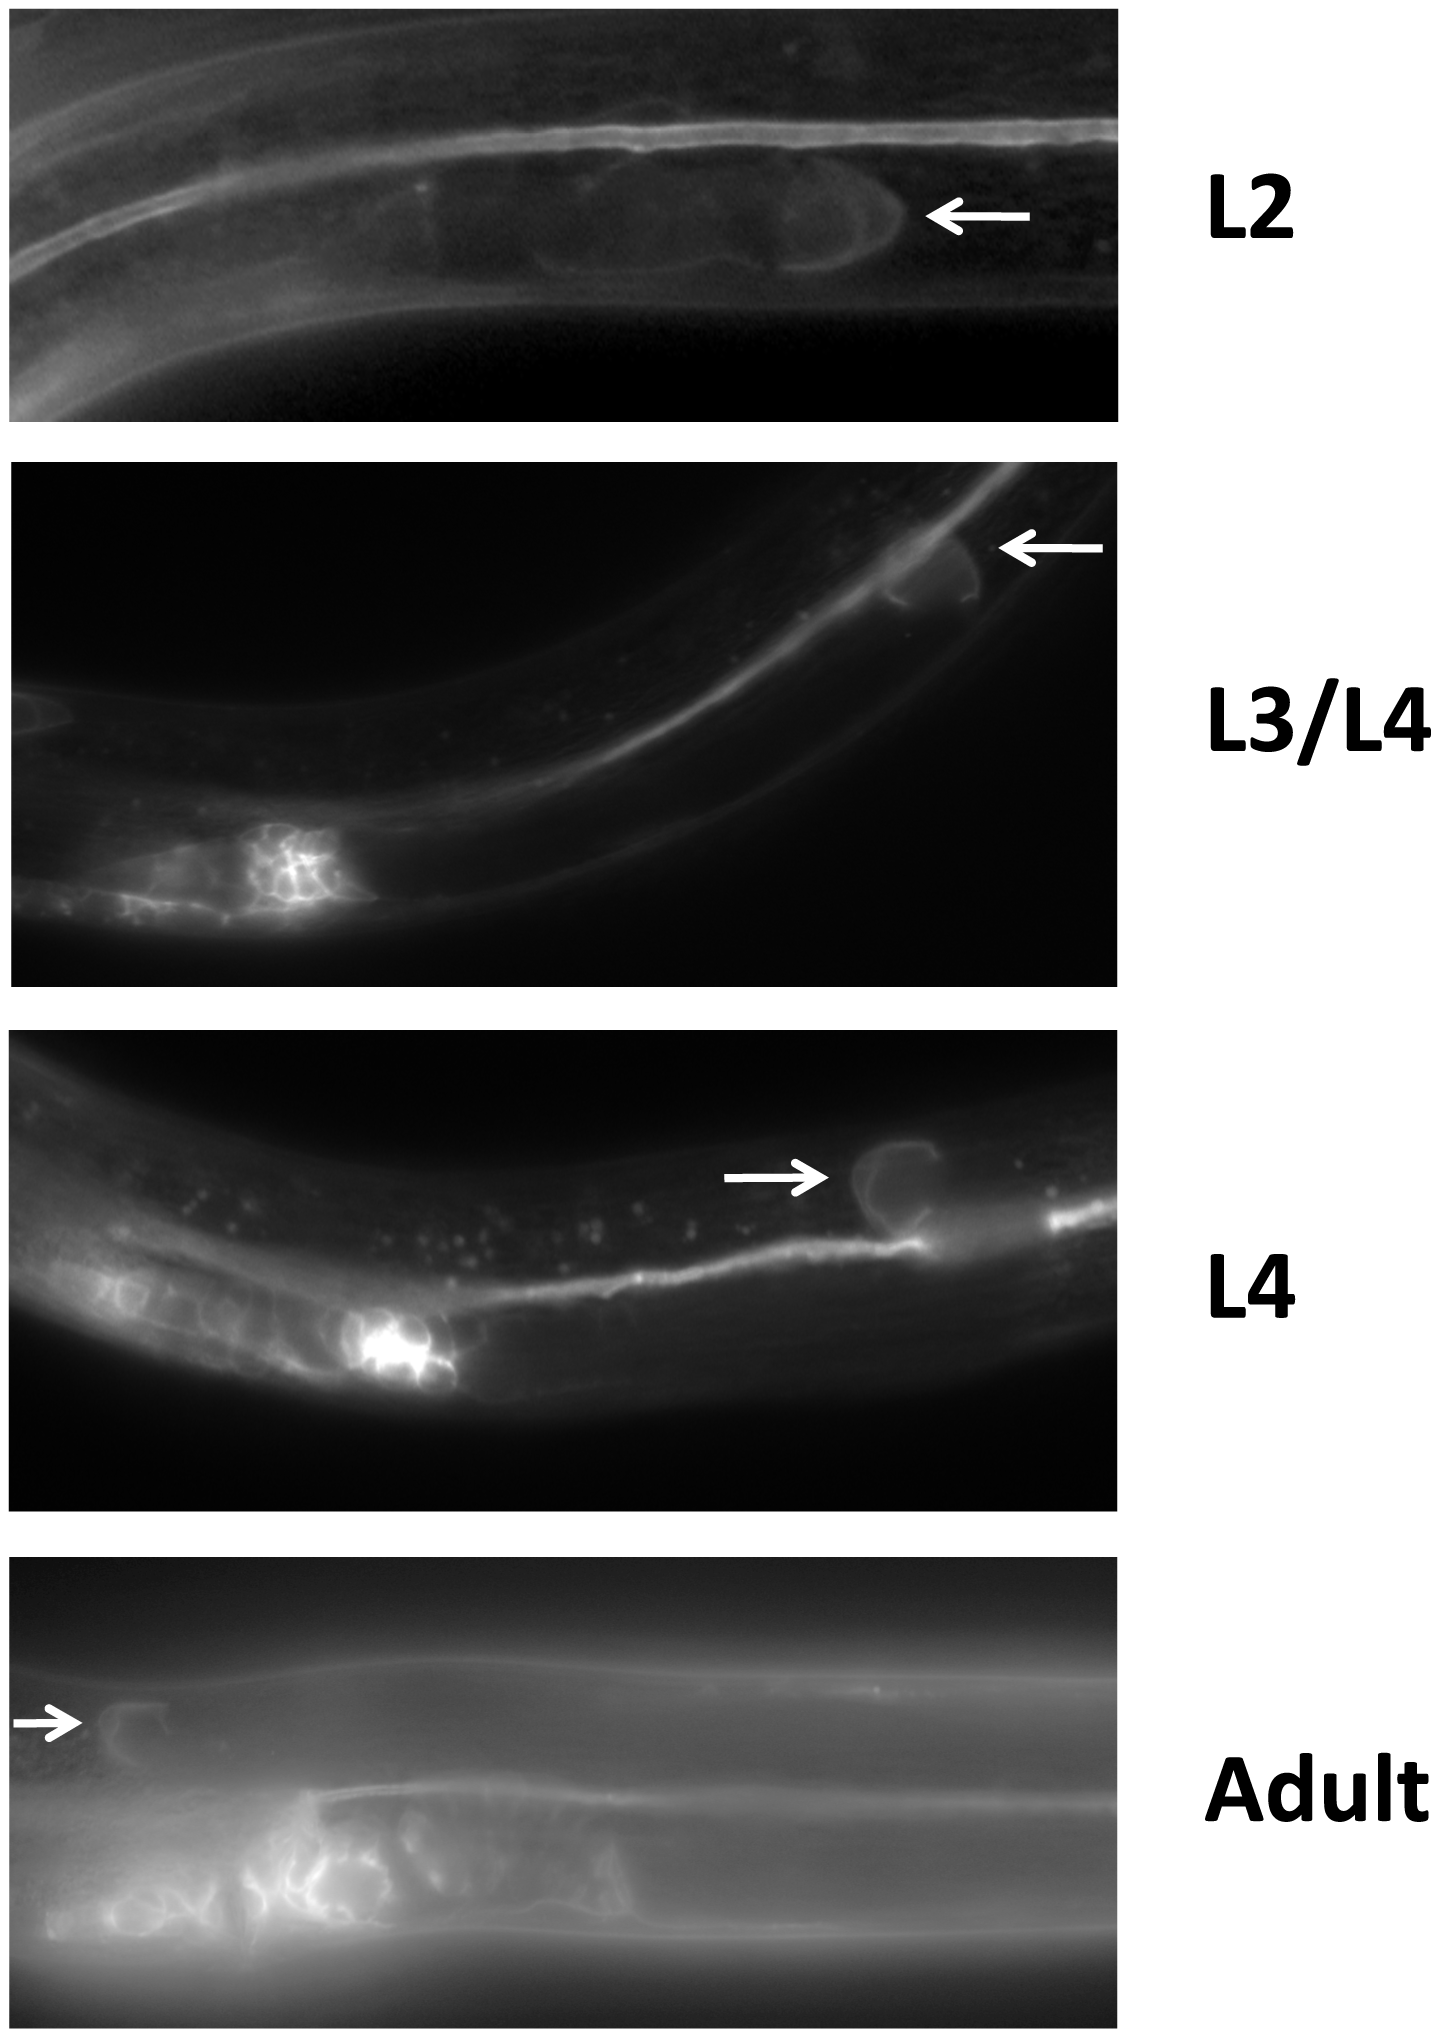 LIN-17 is expressed in the hermaphrodite DTCs throughout development.